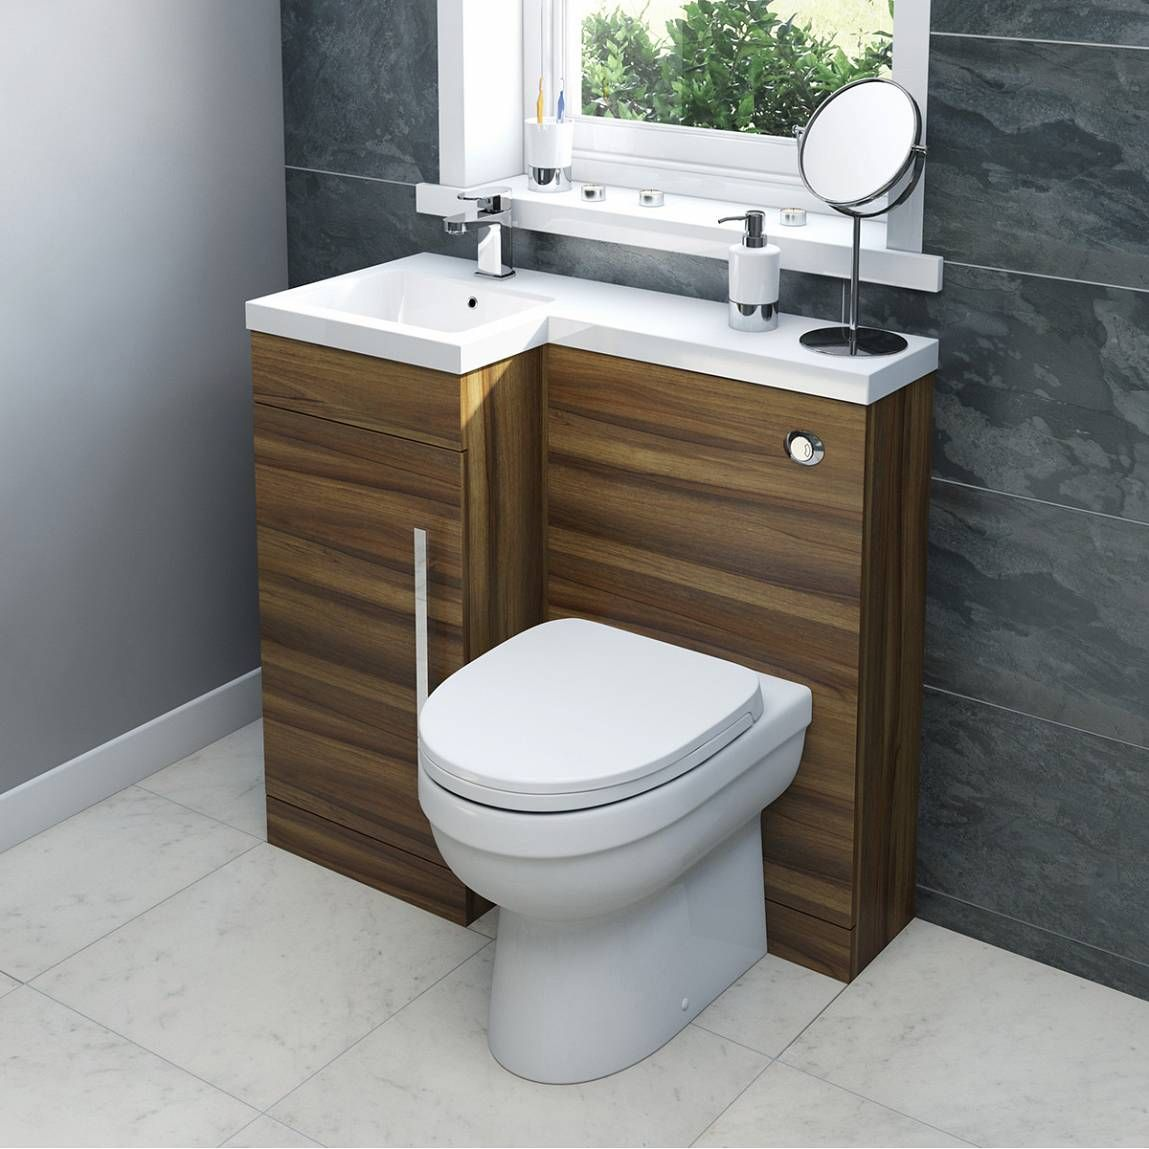 Bathroom Accessories Victoria Plumb myspace walnut combination unit lh with energy btw - victoria